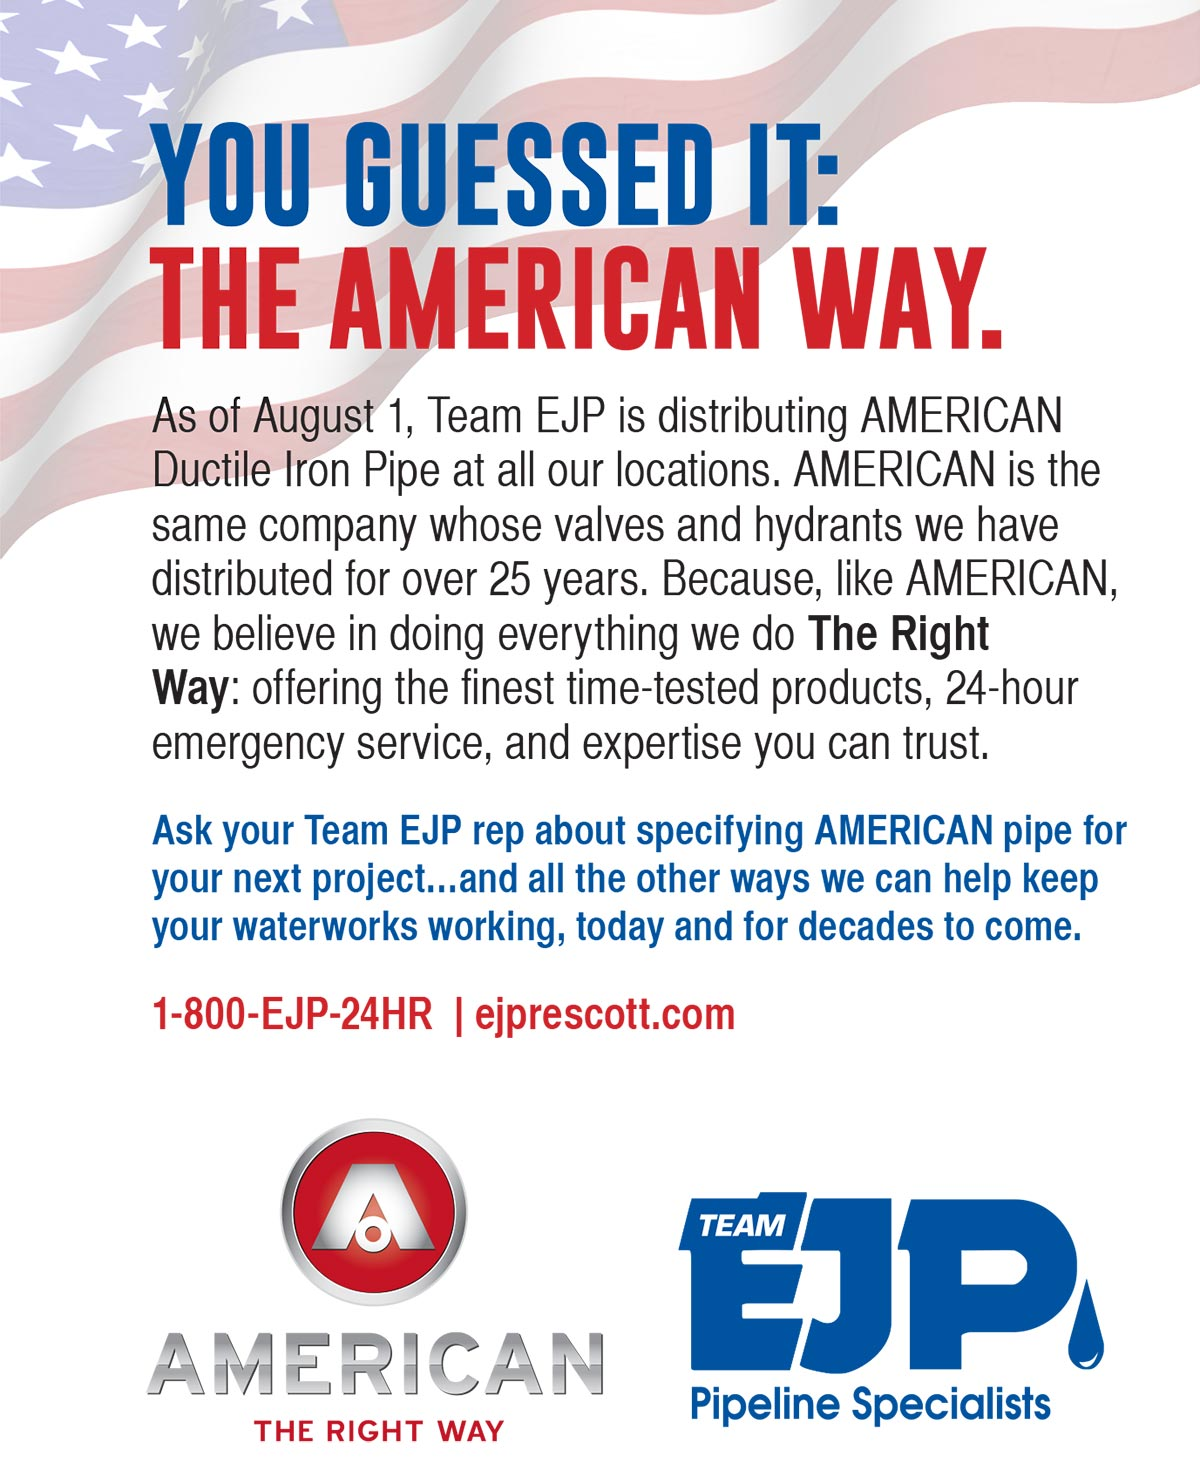 American Pipe Announcment